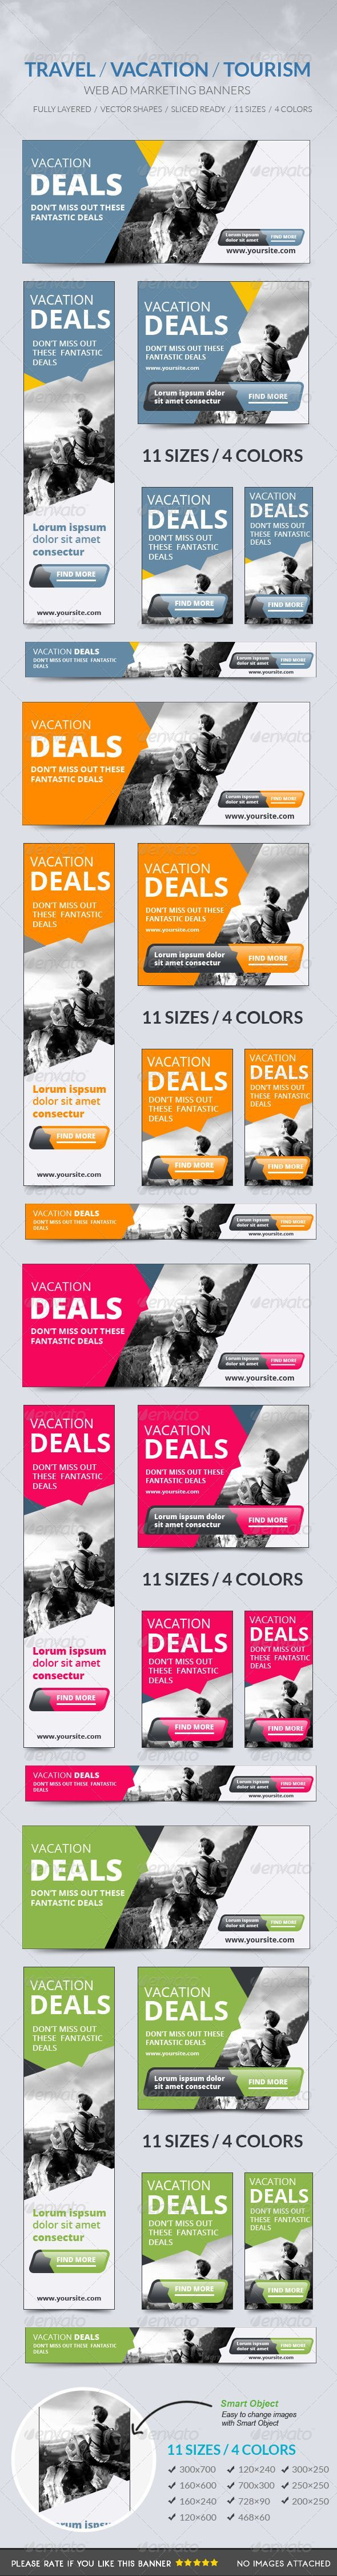 Travel Vacation Tourism Banner Template PSD   Buy and Download: http://graphicriver.net/item/travel-vacation-tourism-banner-/8715190?WT.ac=category_thumb&WT.z_author=msrashdi&ref=ksioks: